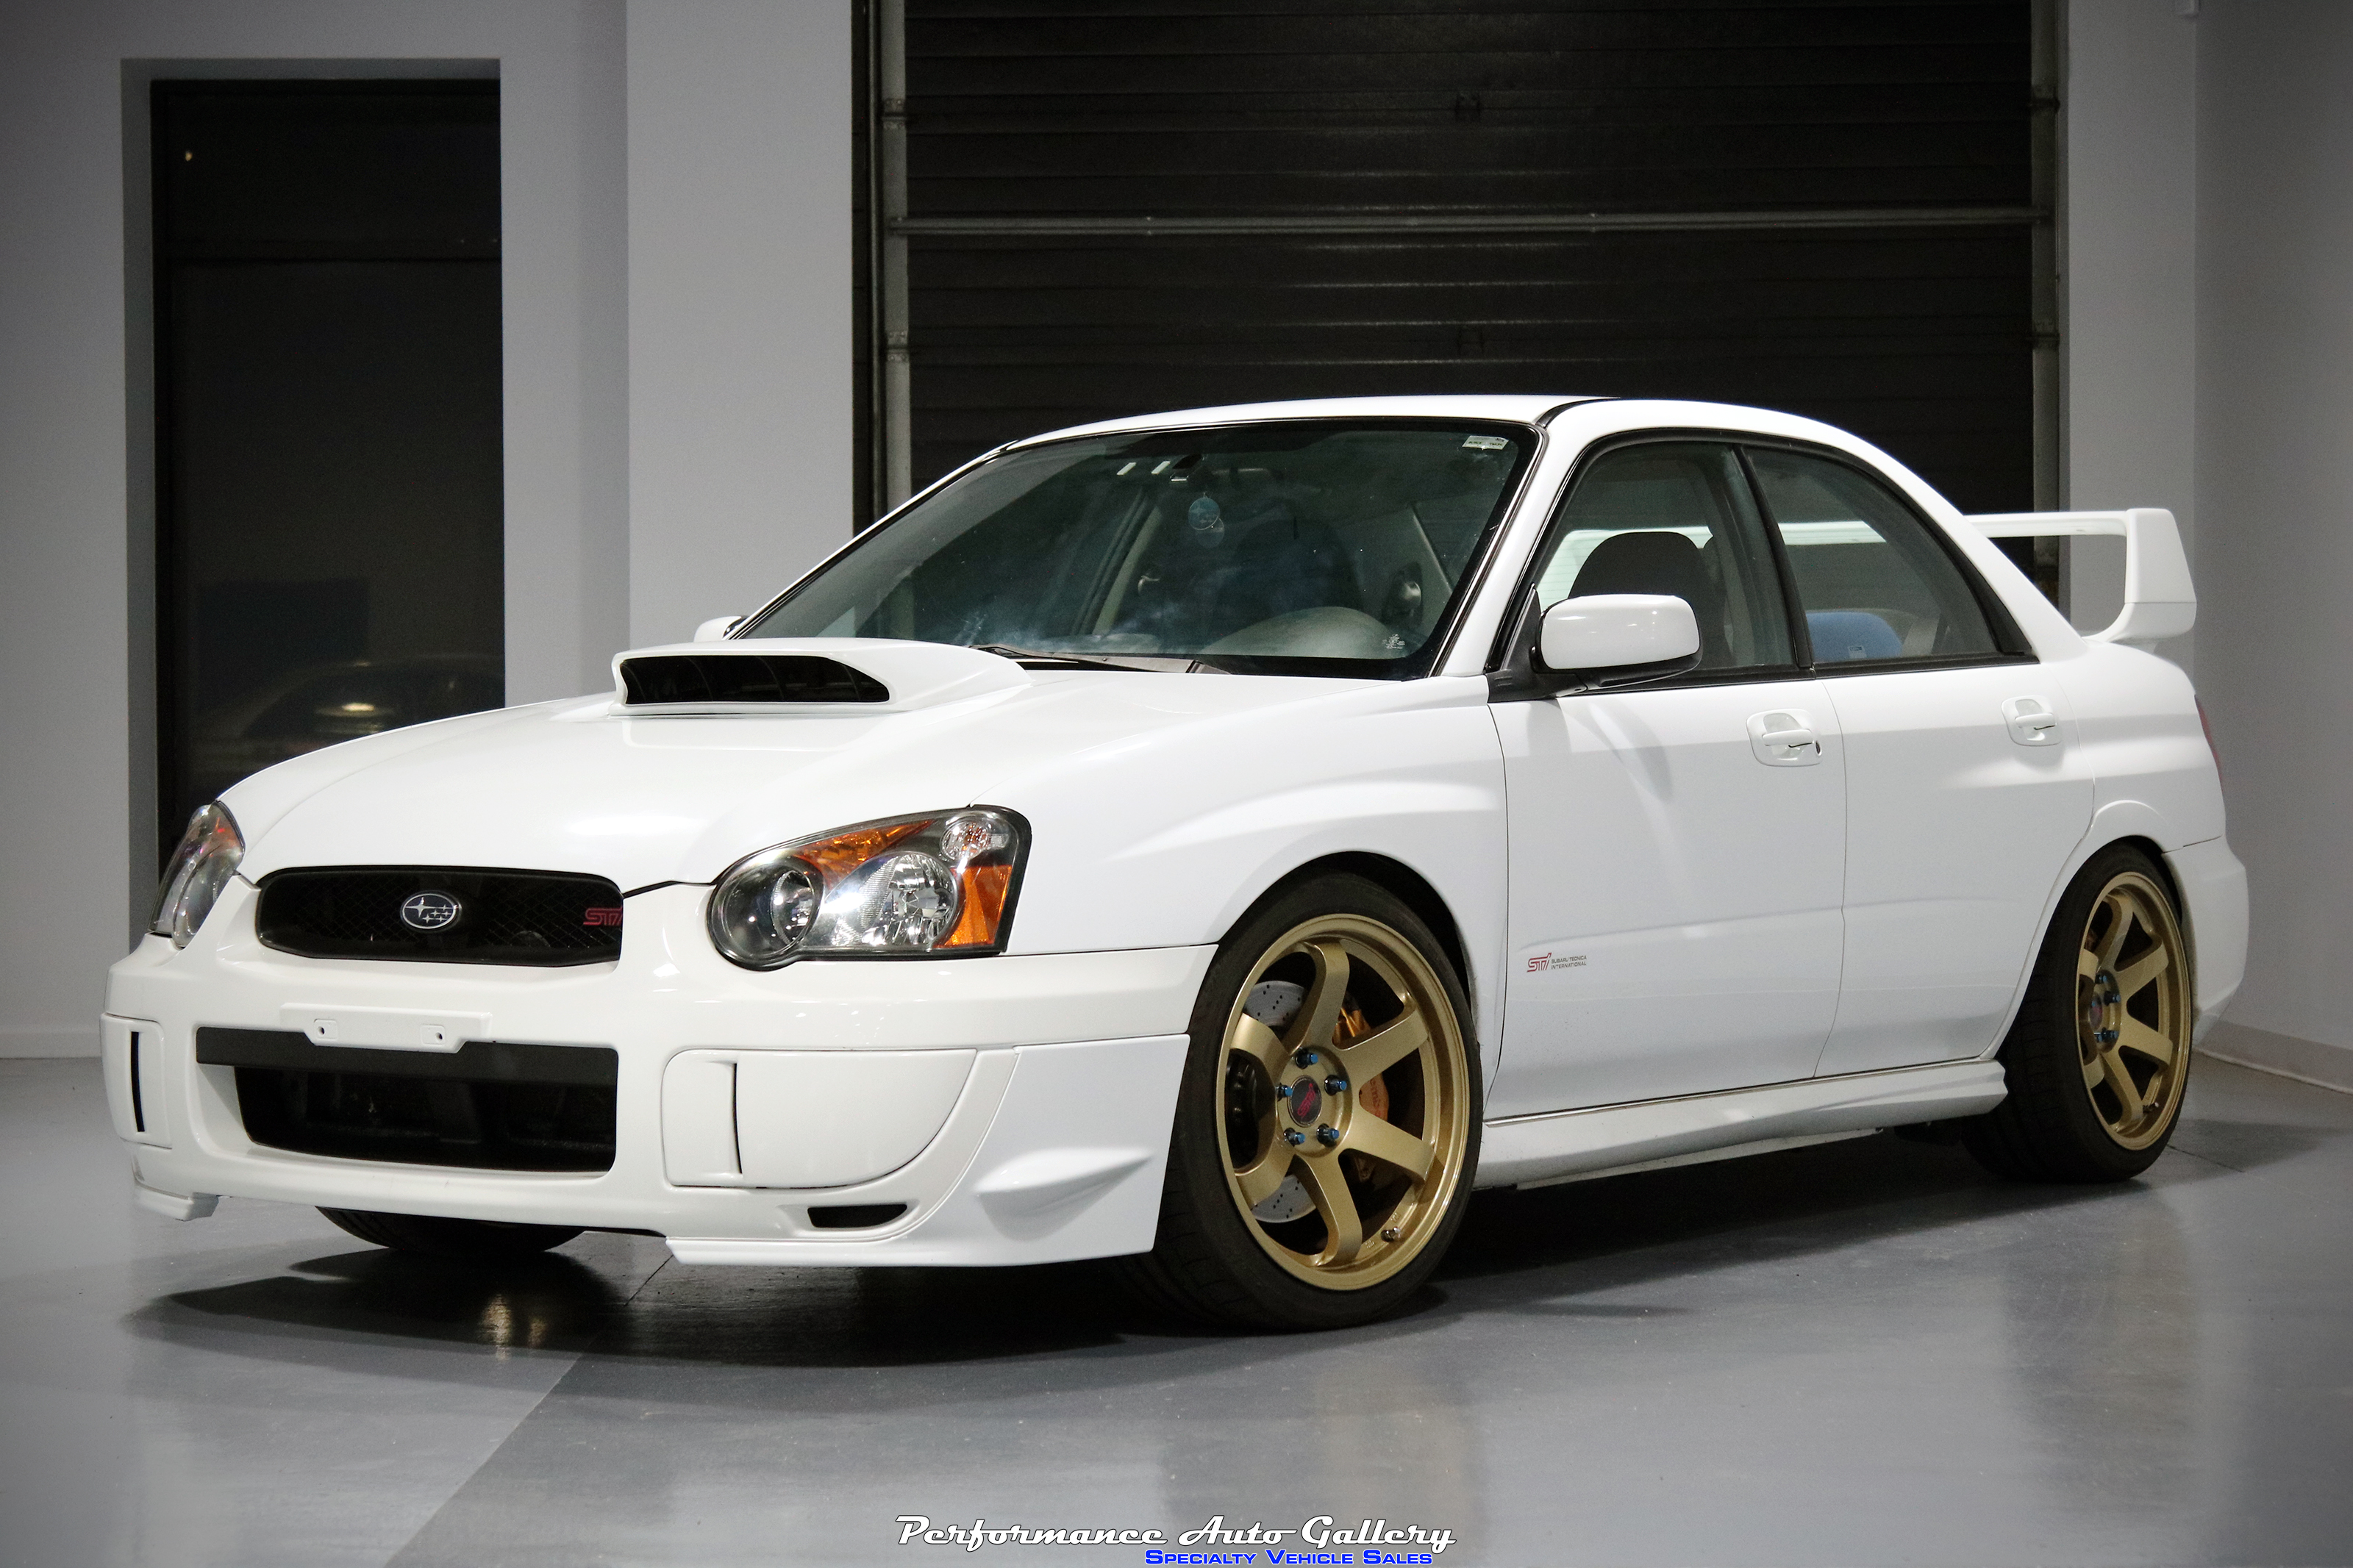 Another Sti For Sale 2005 Subaru Impreza Wrx Sti